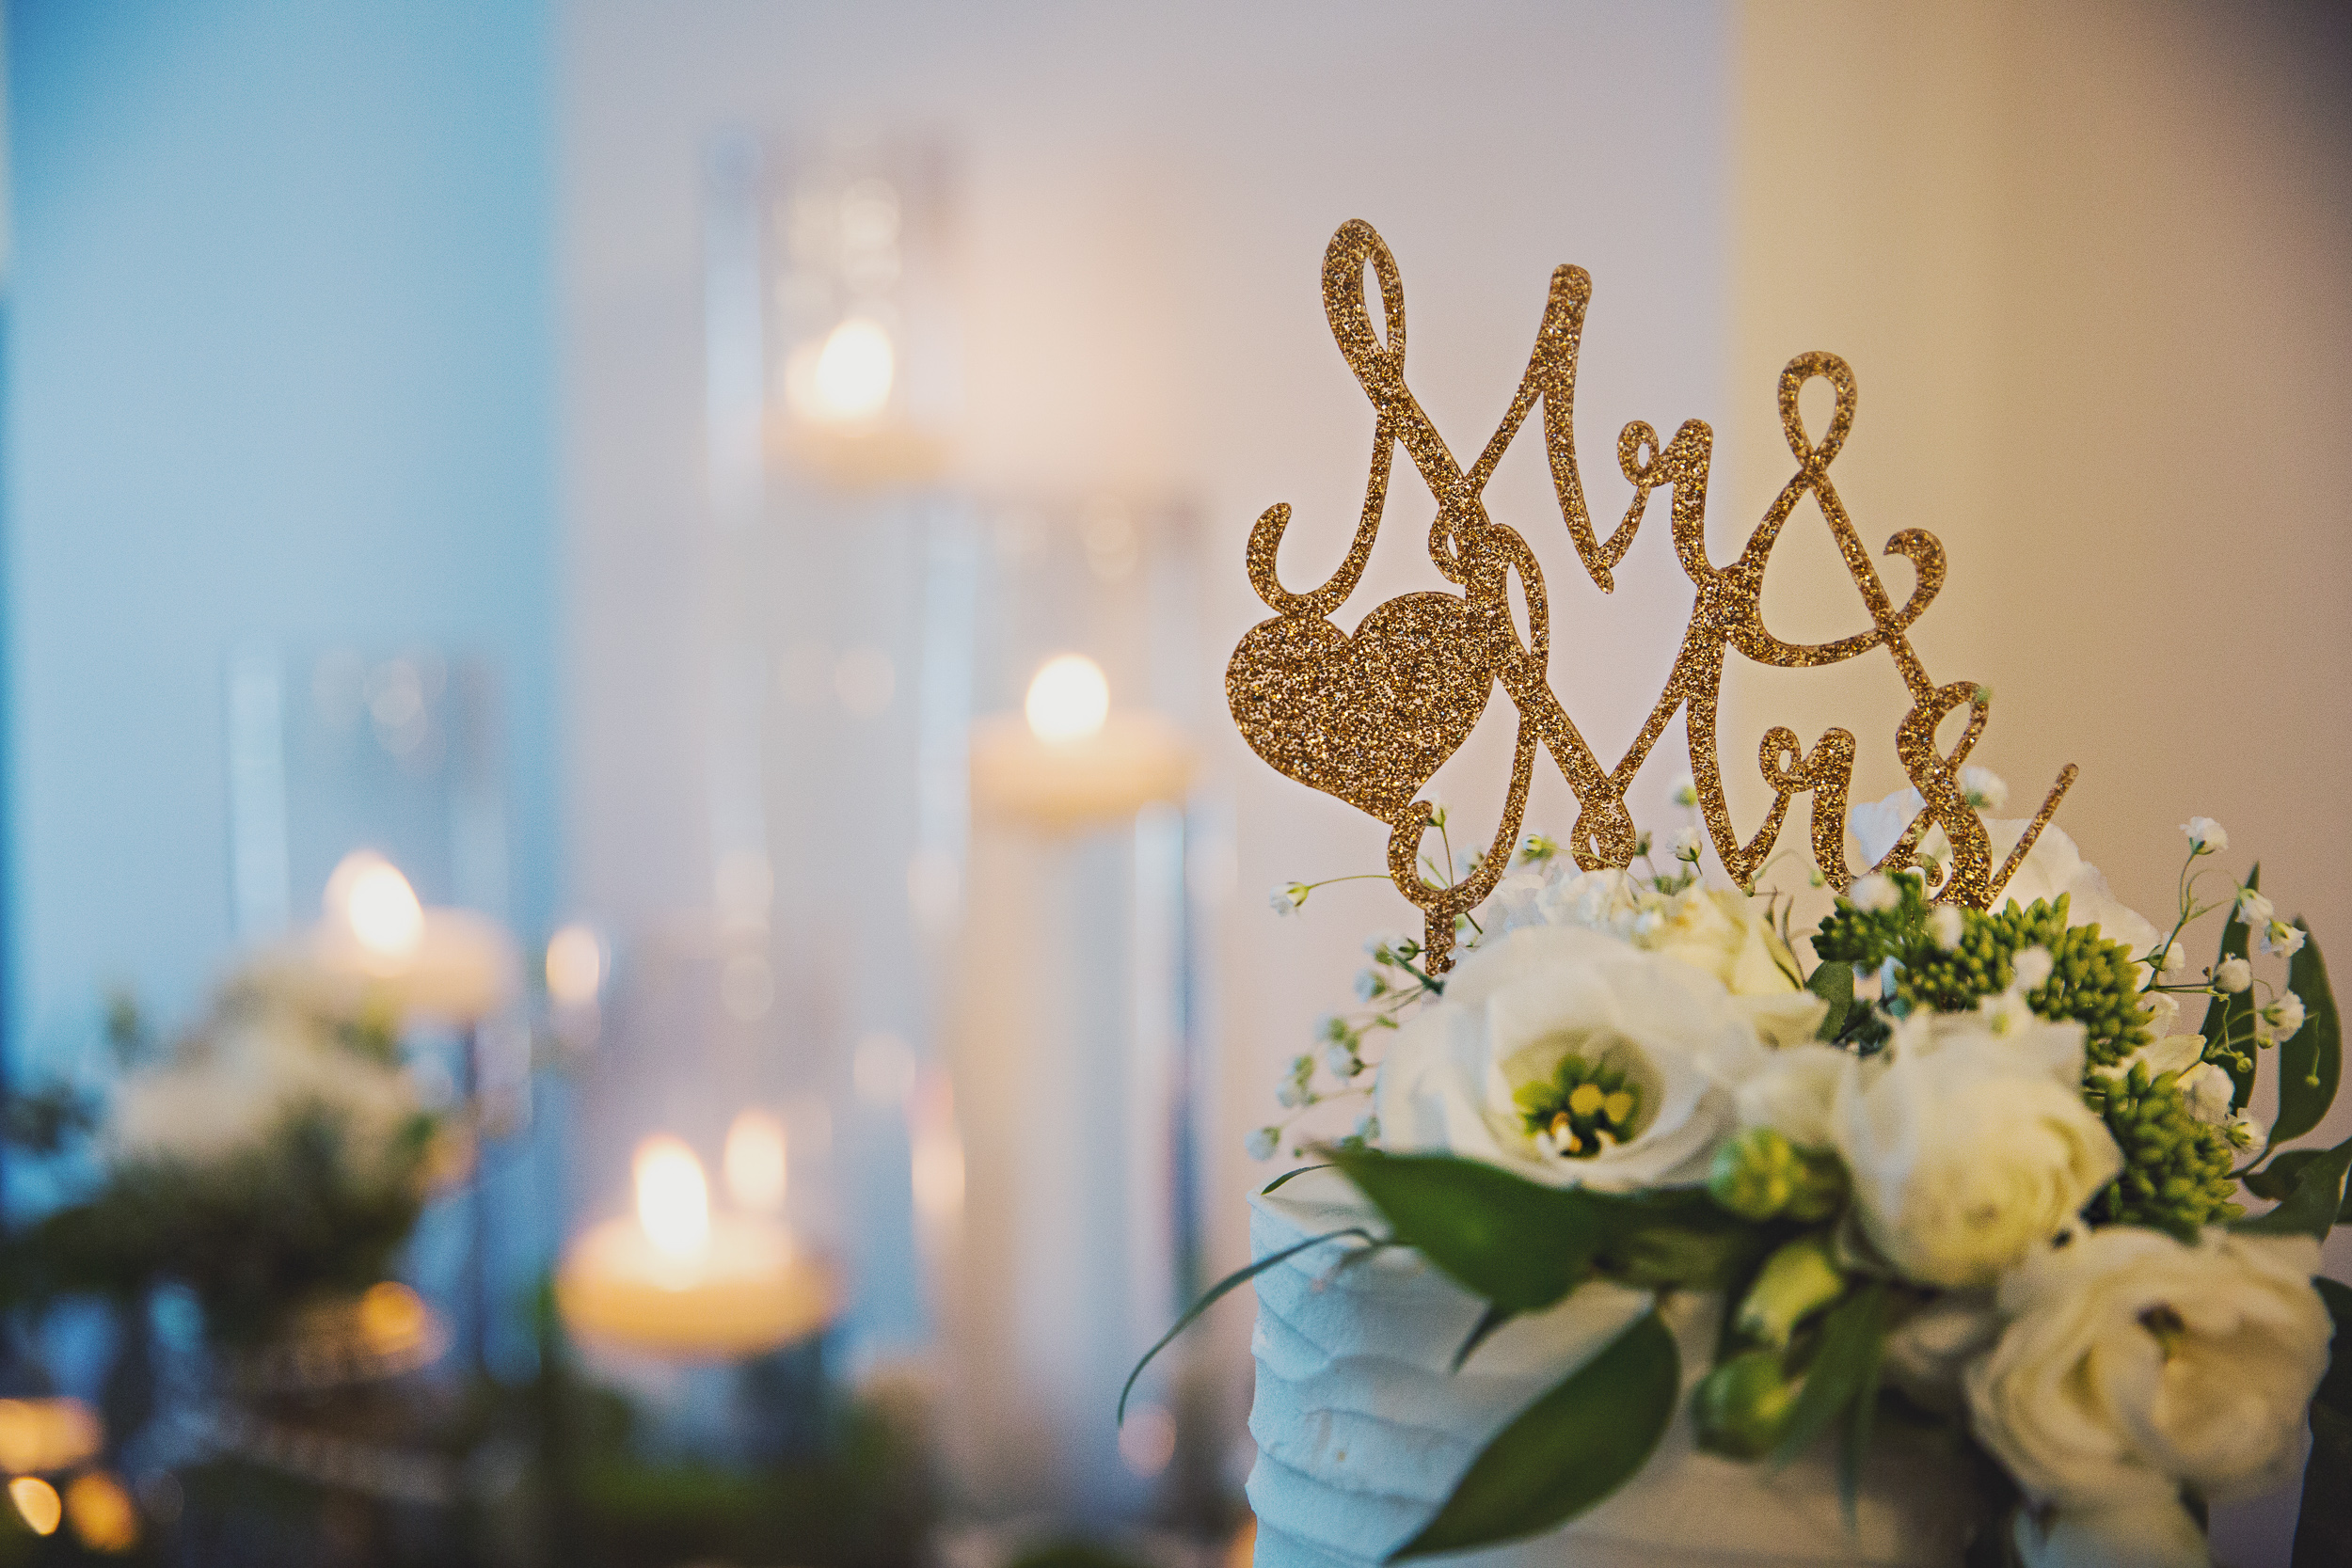 I loved their cute Mr & Mrs cake topper, and the pillars of floating candles all throughout the reception!